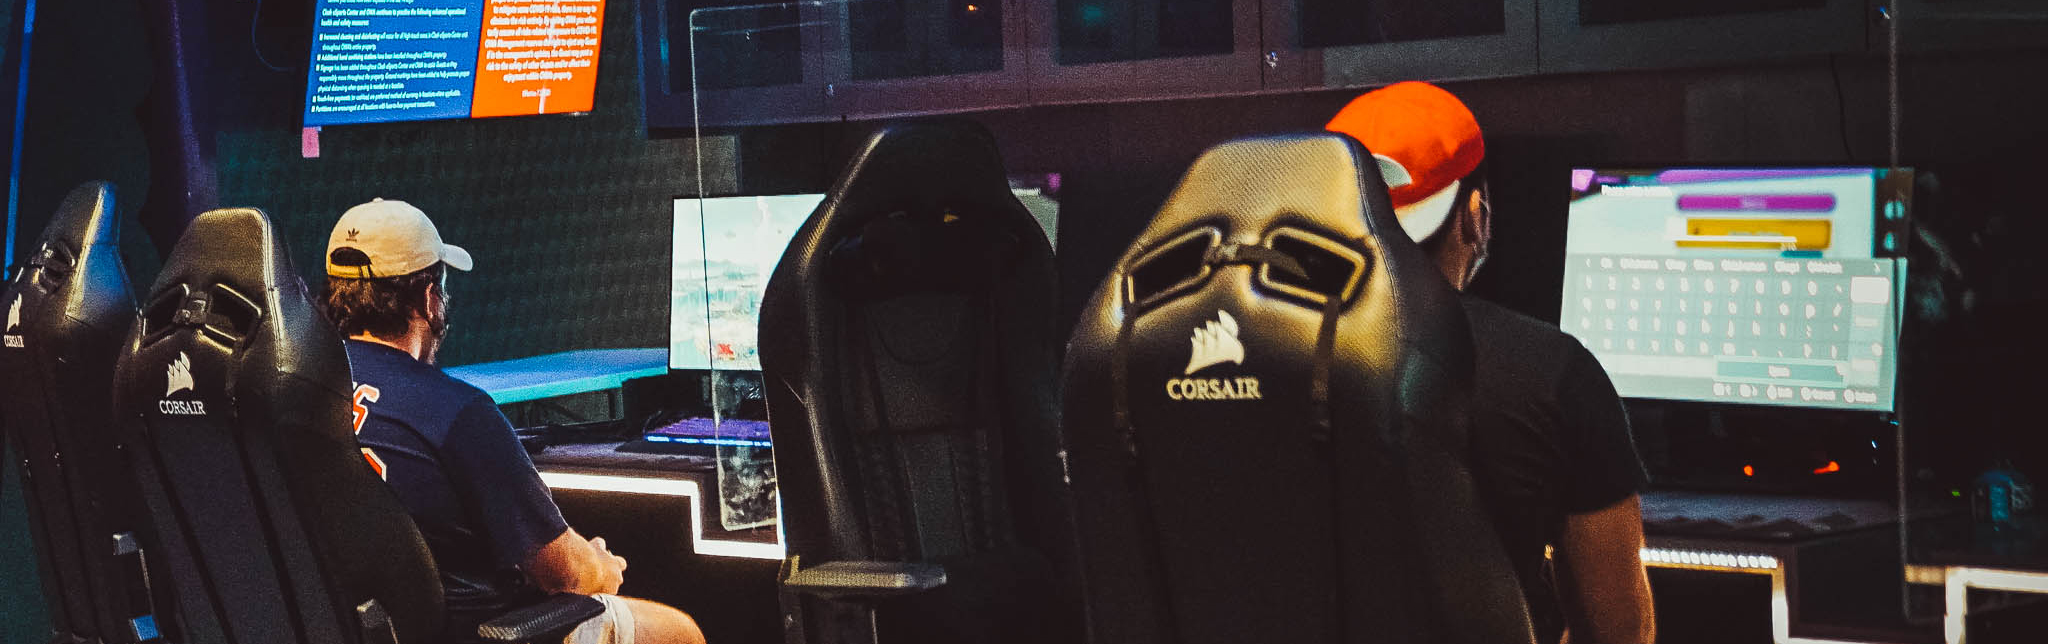 Two people seated in gaming chairs at Clash eSports Center